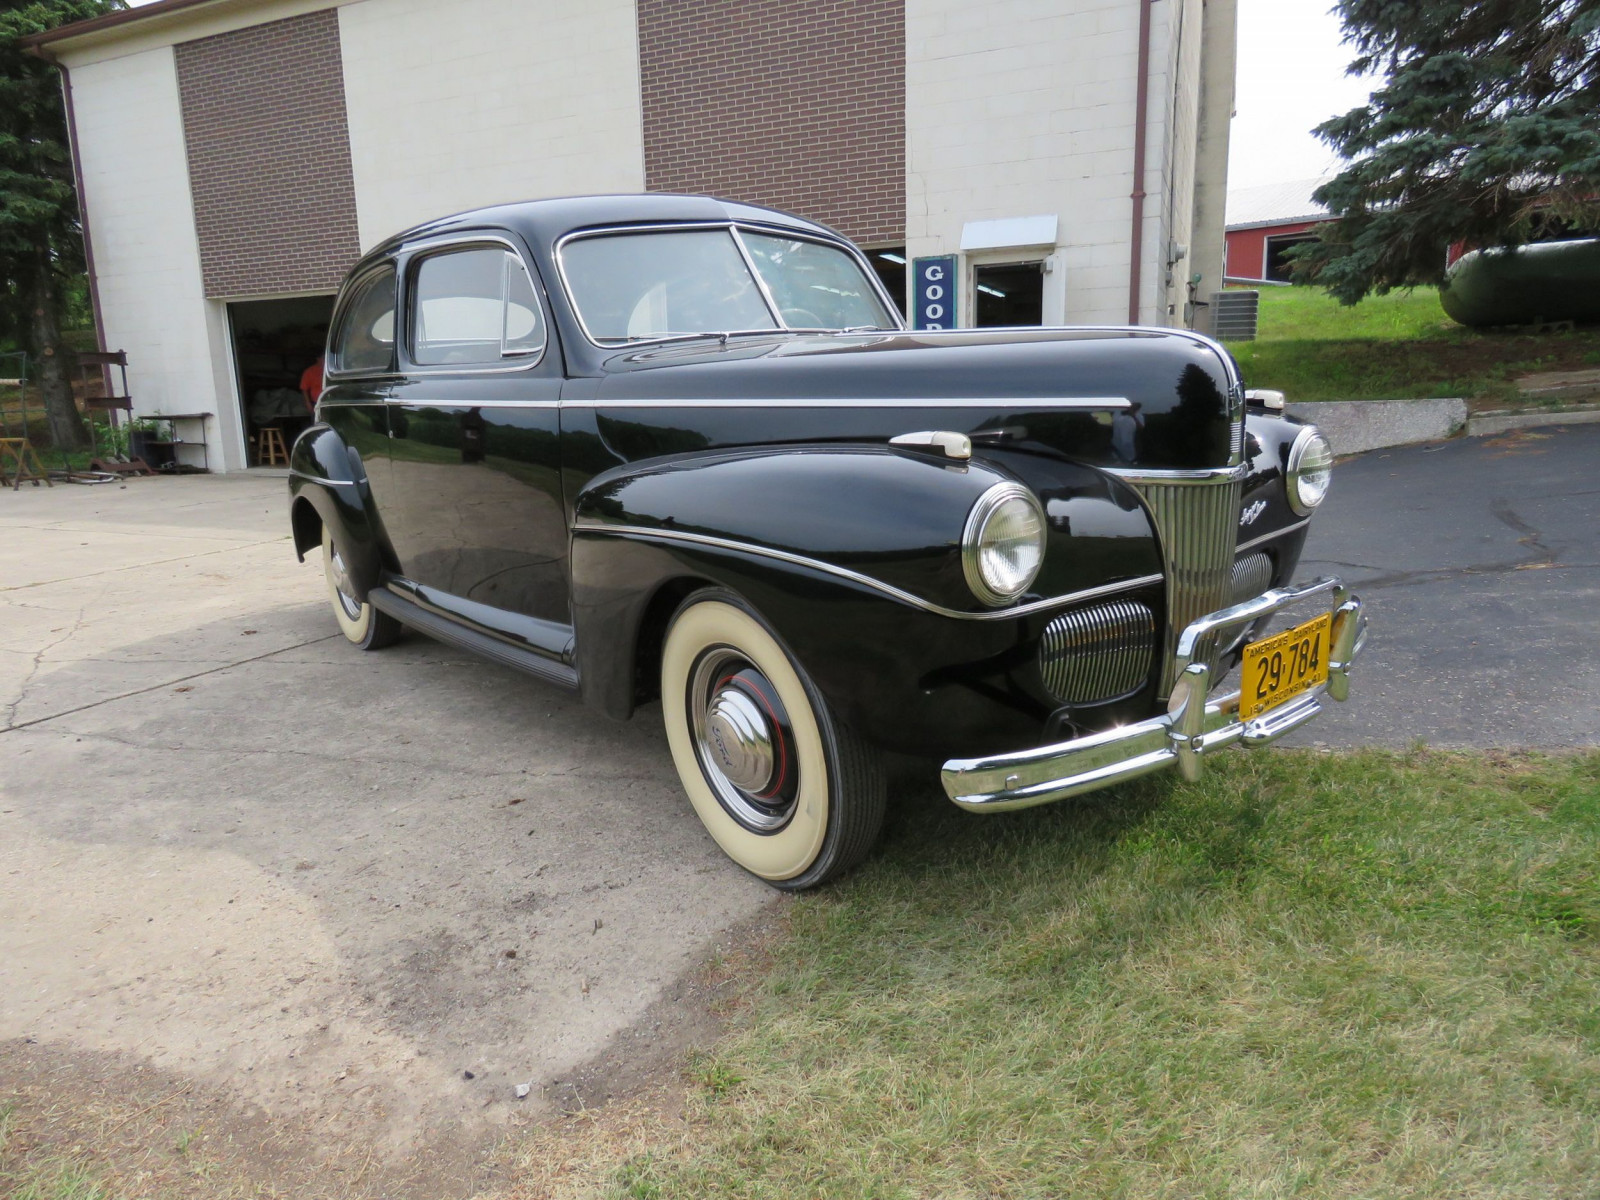 1941 Ford Super Deluxe Tudor Sedan - Image 3